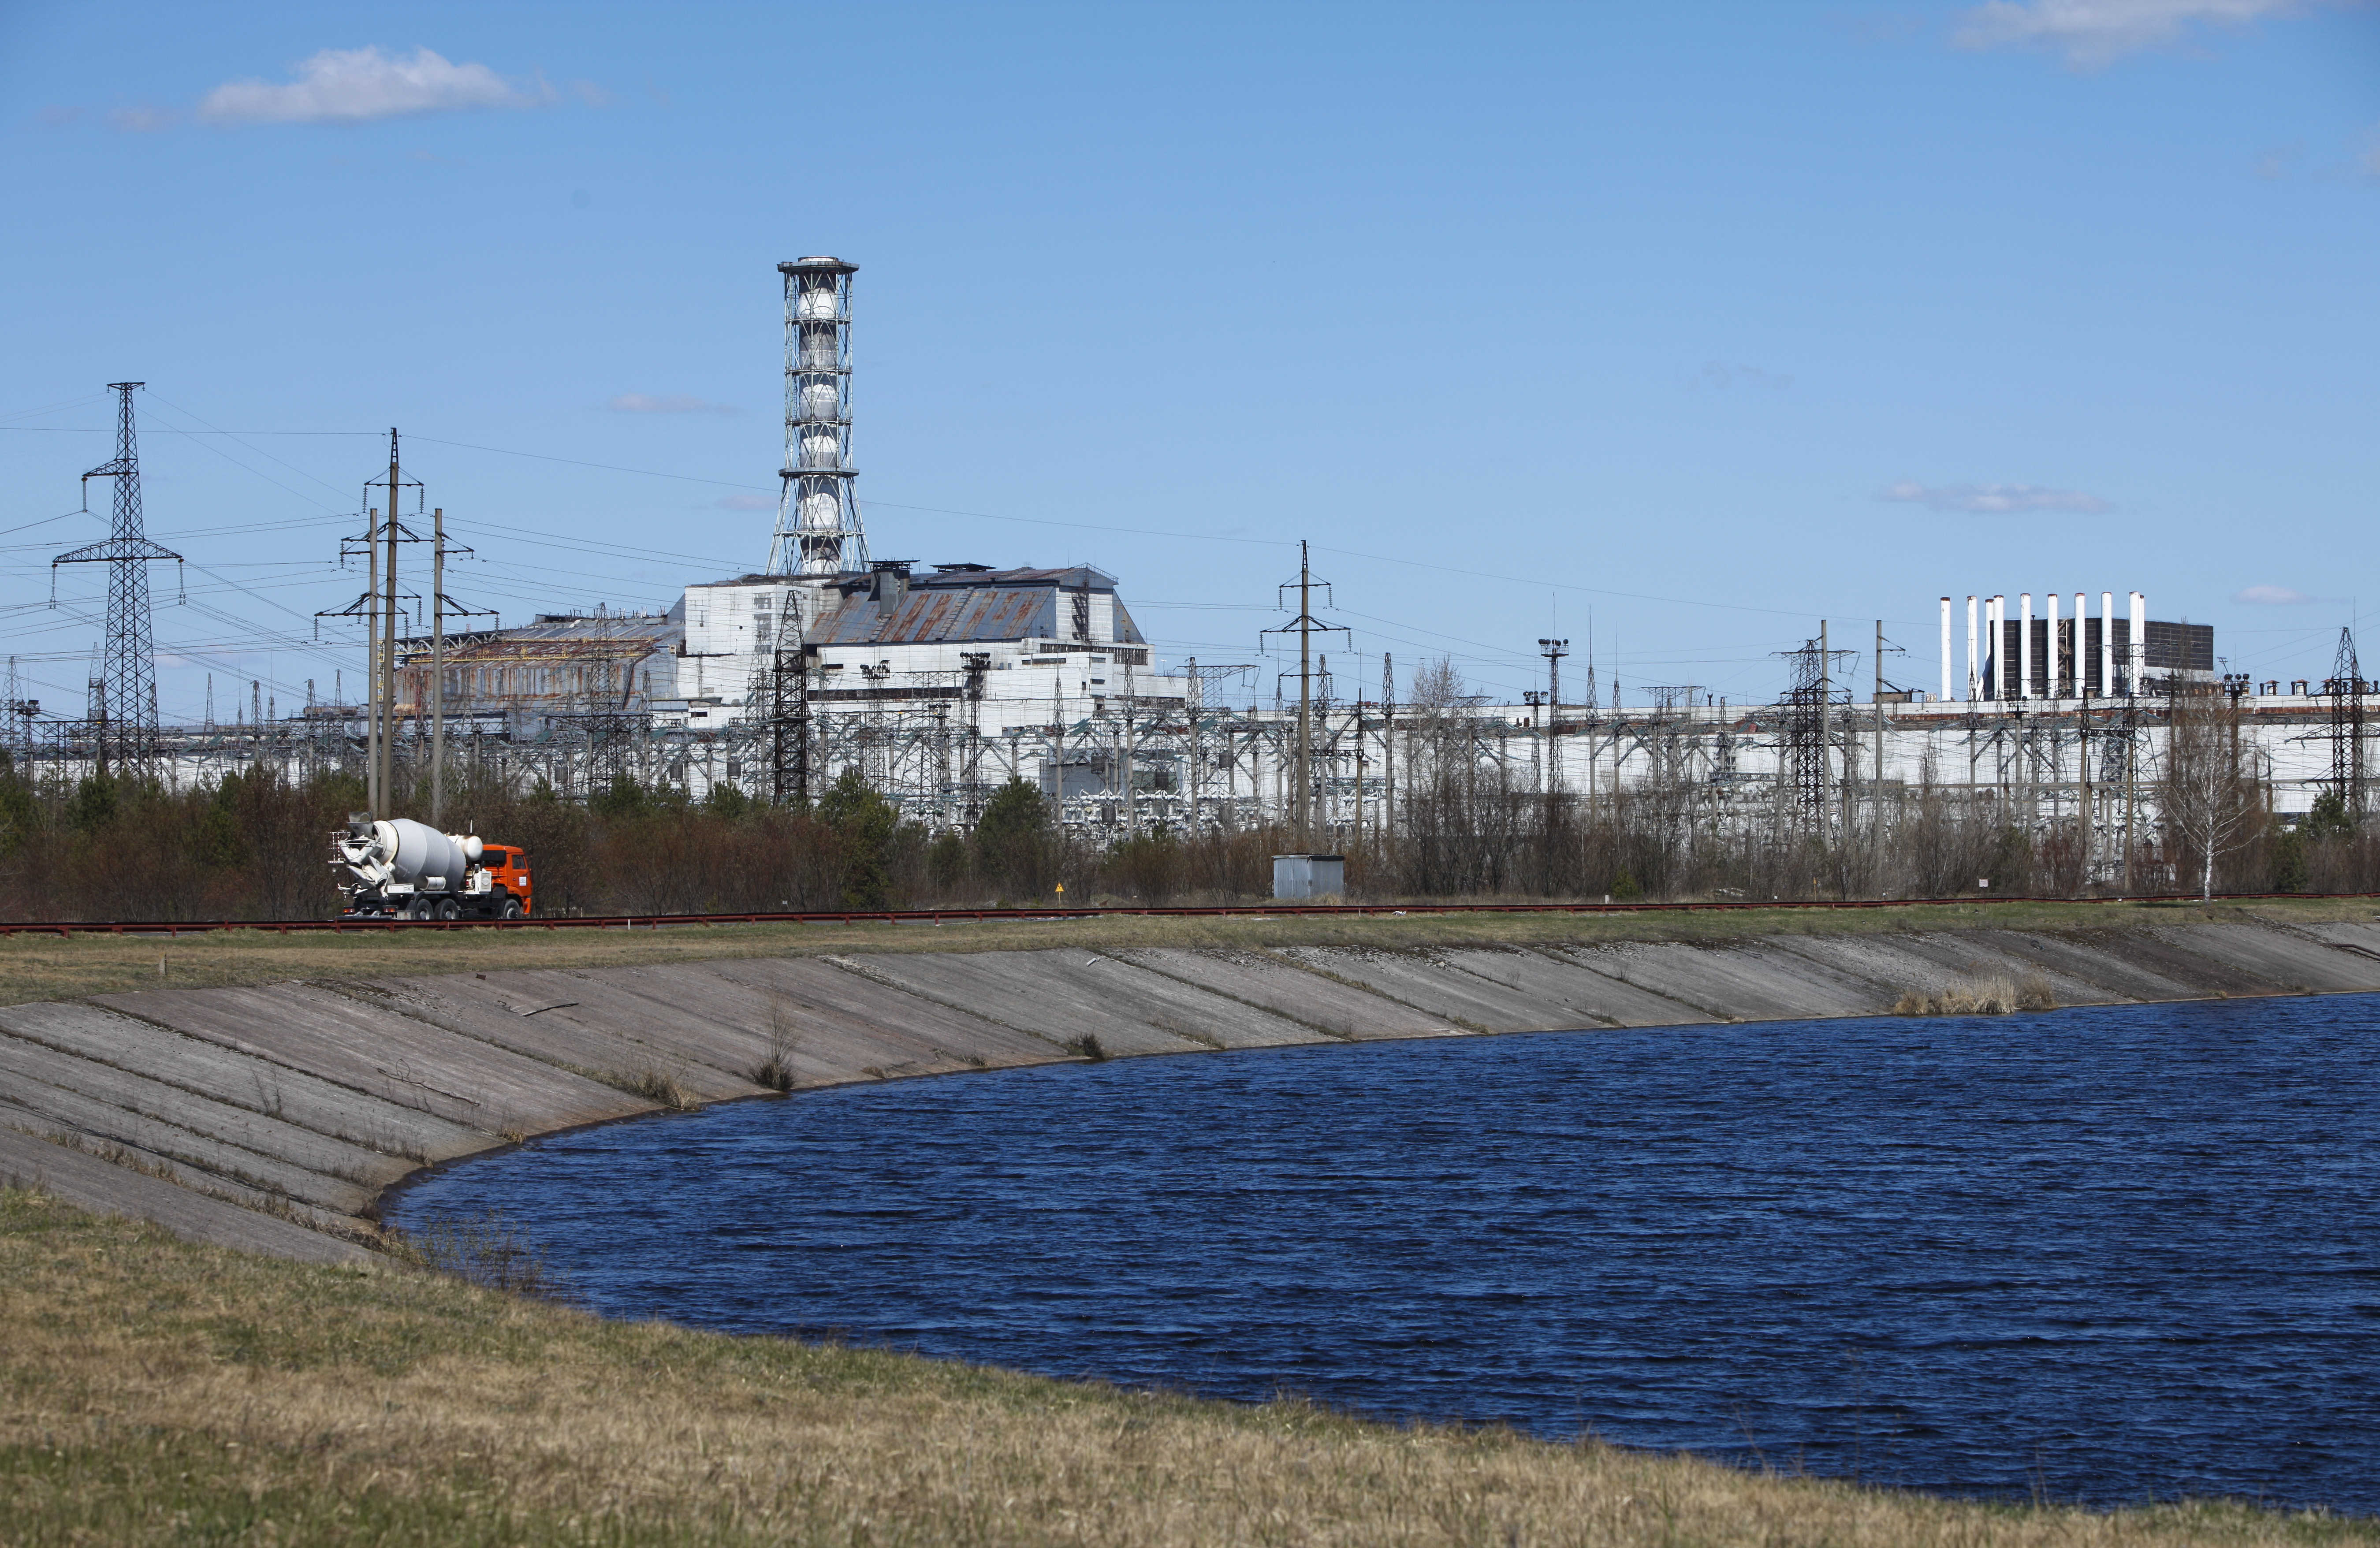 The building of Reactor No. 4 at the Chernobyl nuclear power plant is seen in Chernobyl, Ukraine, Wednesday, April 20, 2011.